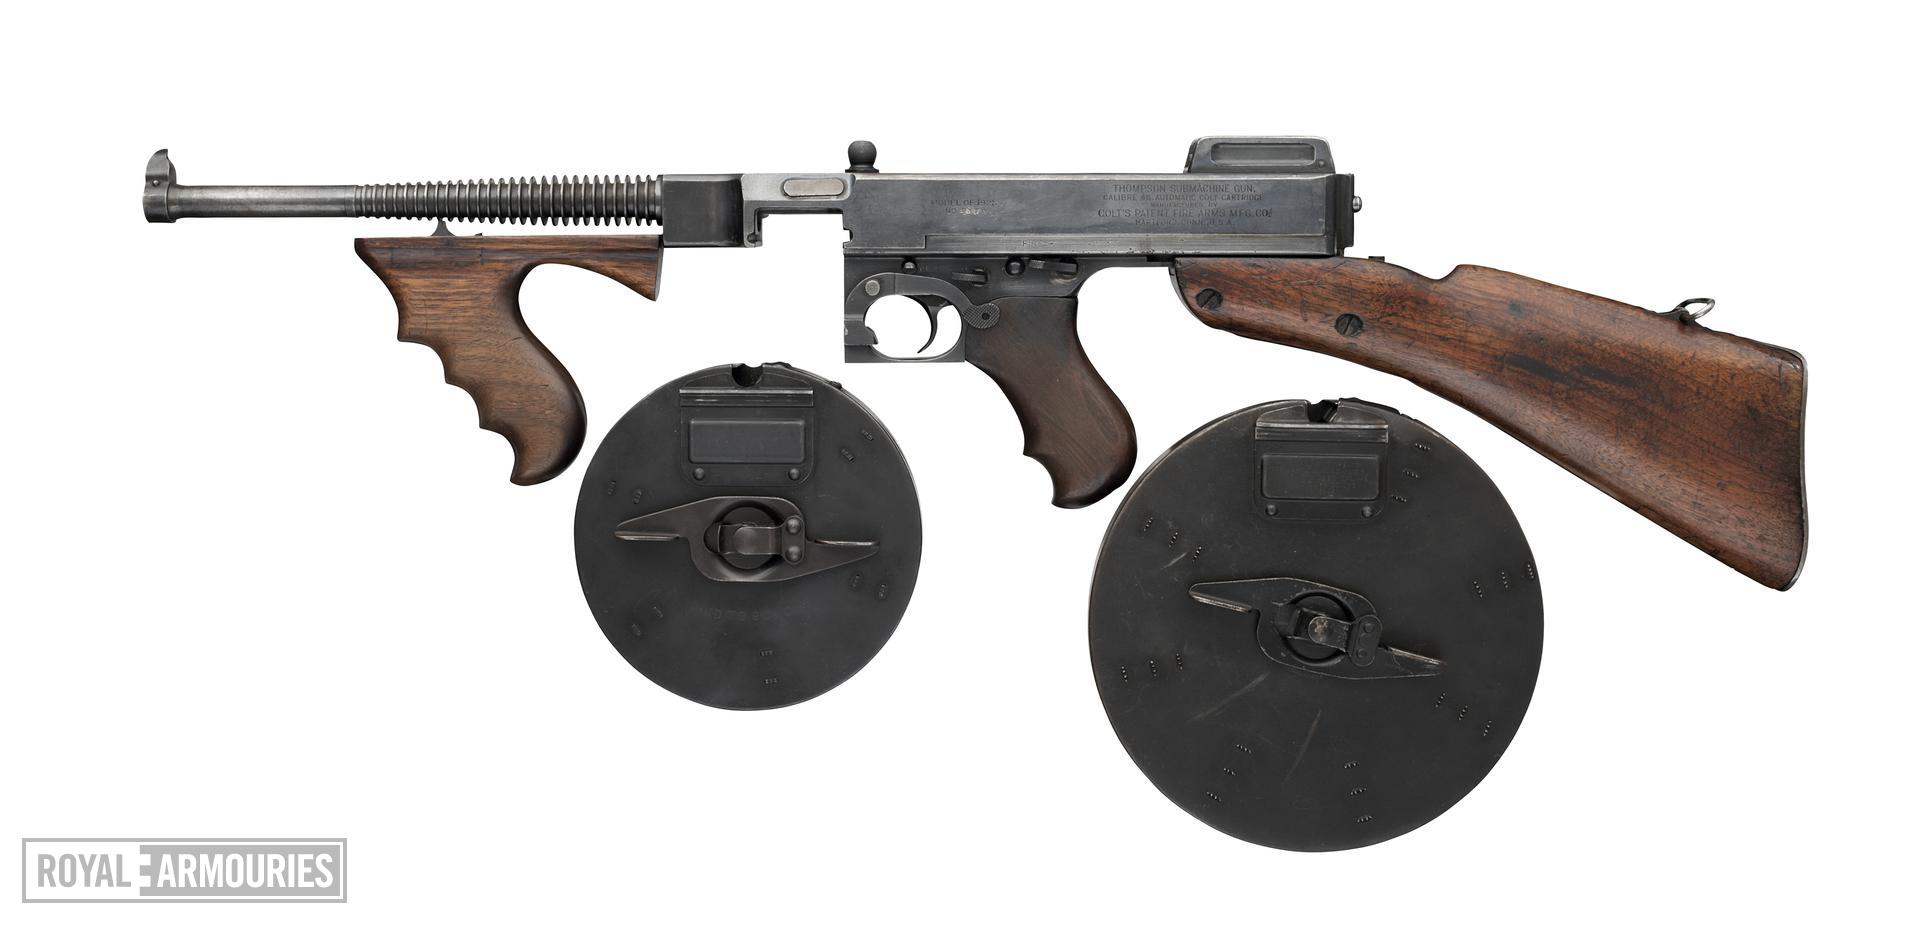 Centrefire automatic submachine gun - Thompson Model 1921